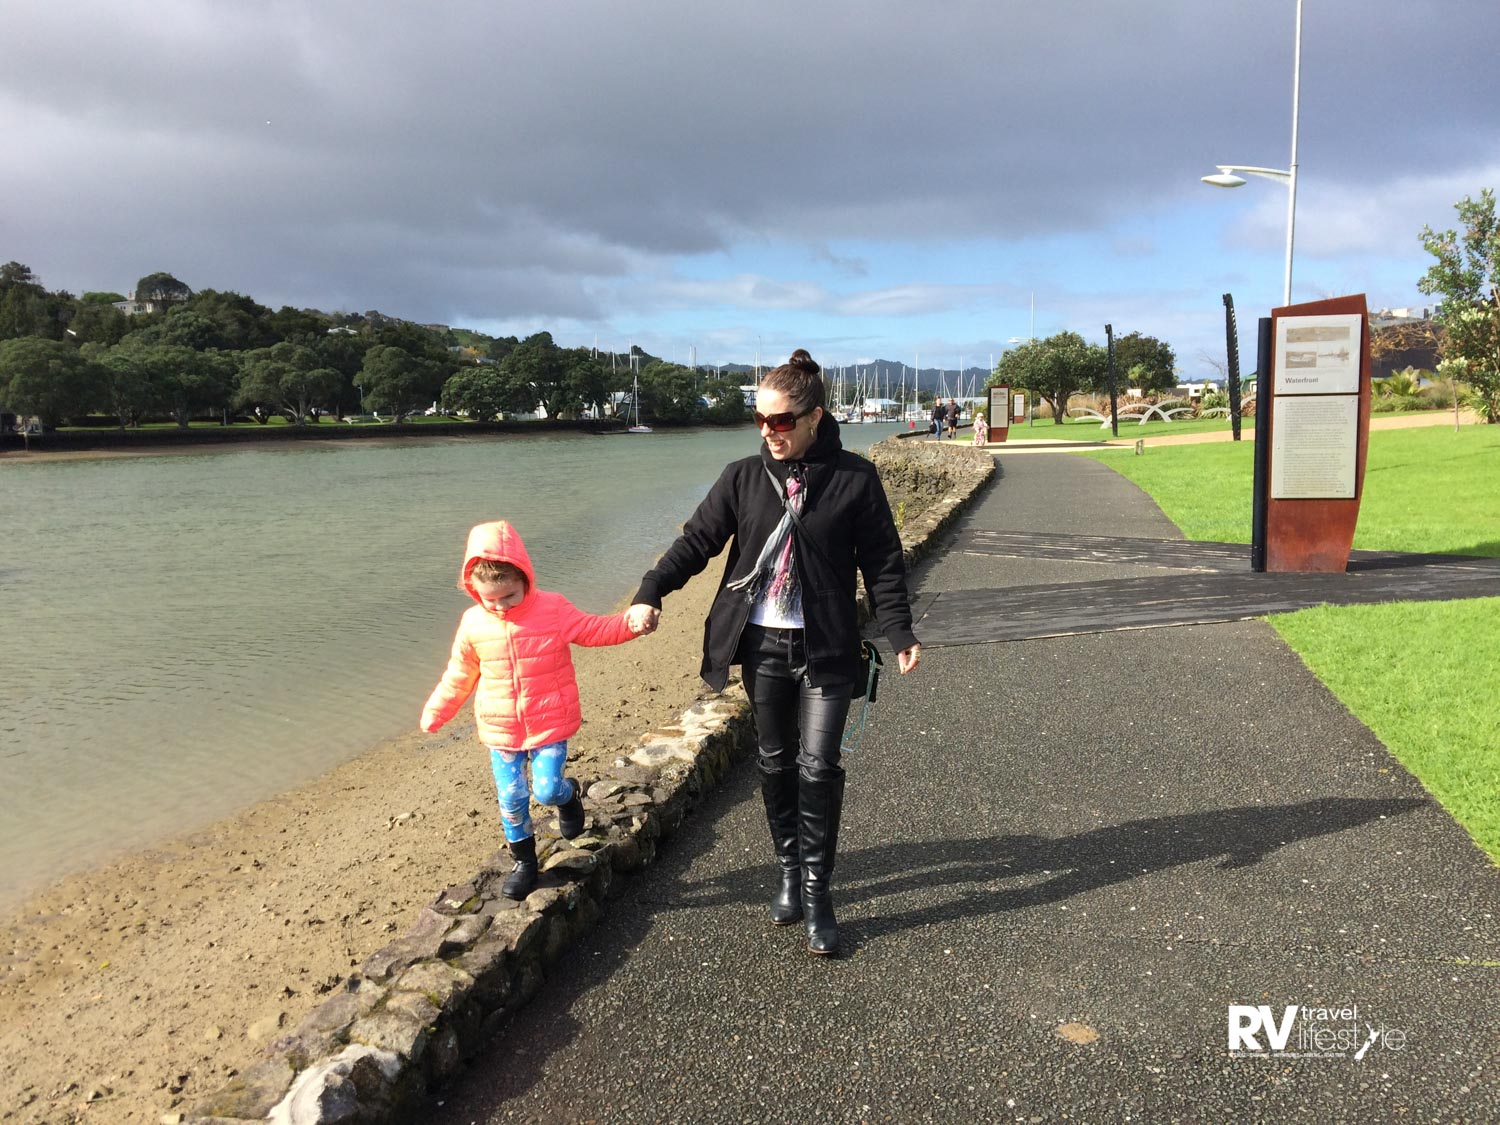 A final family walk along the Whangarei walkway